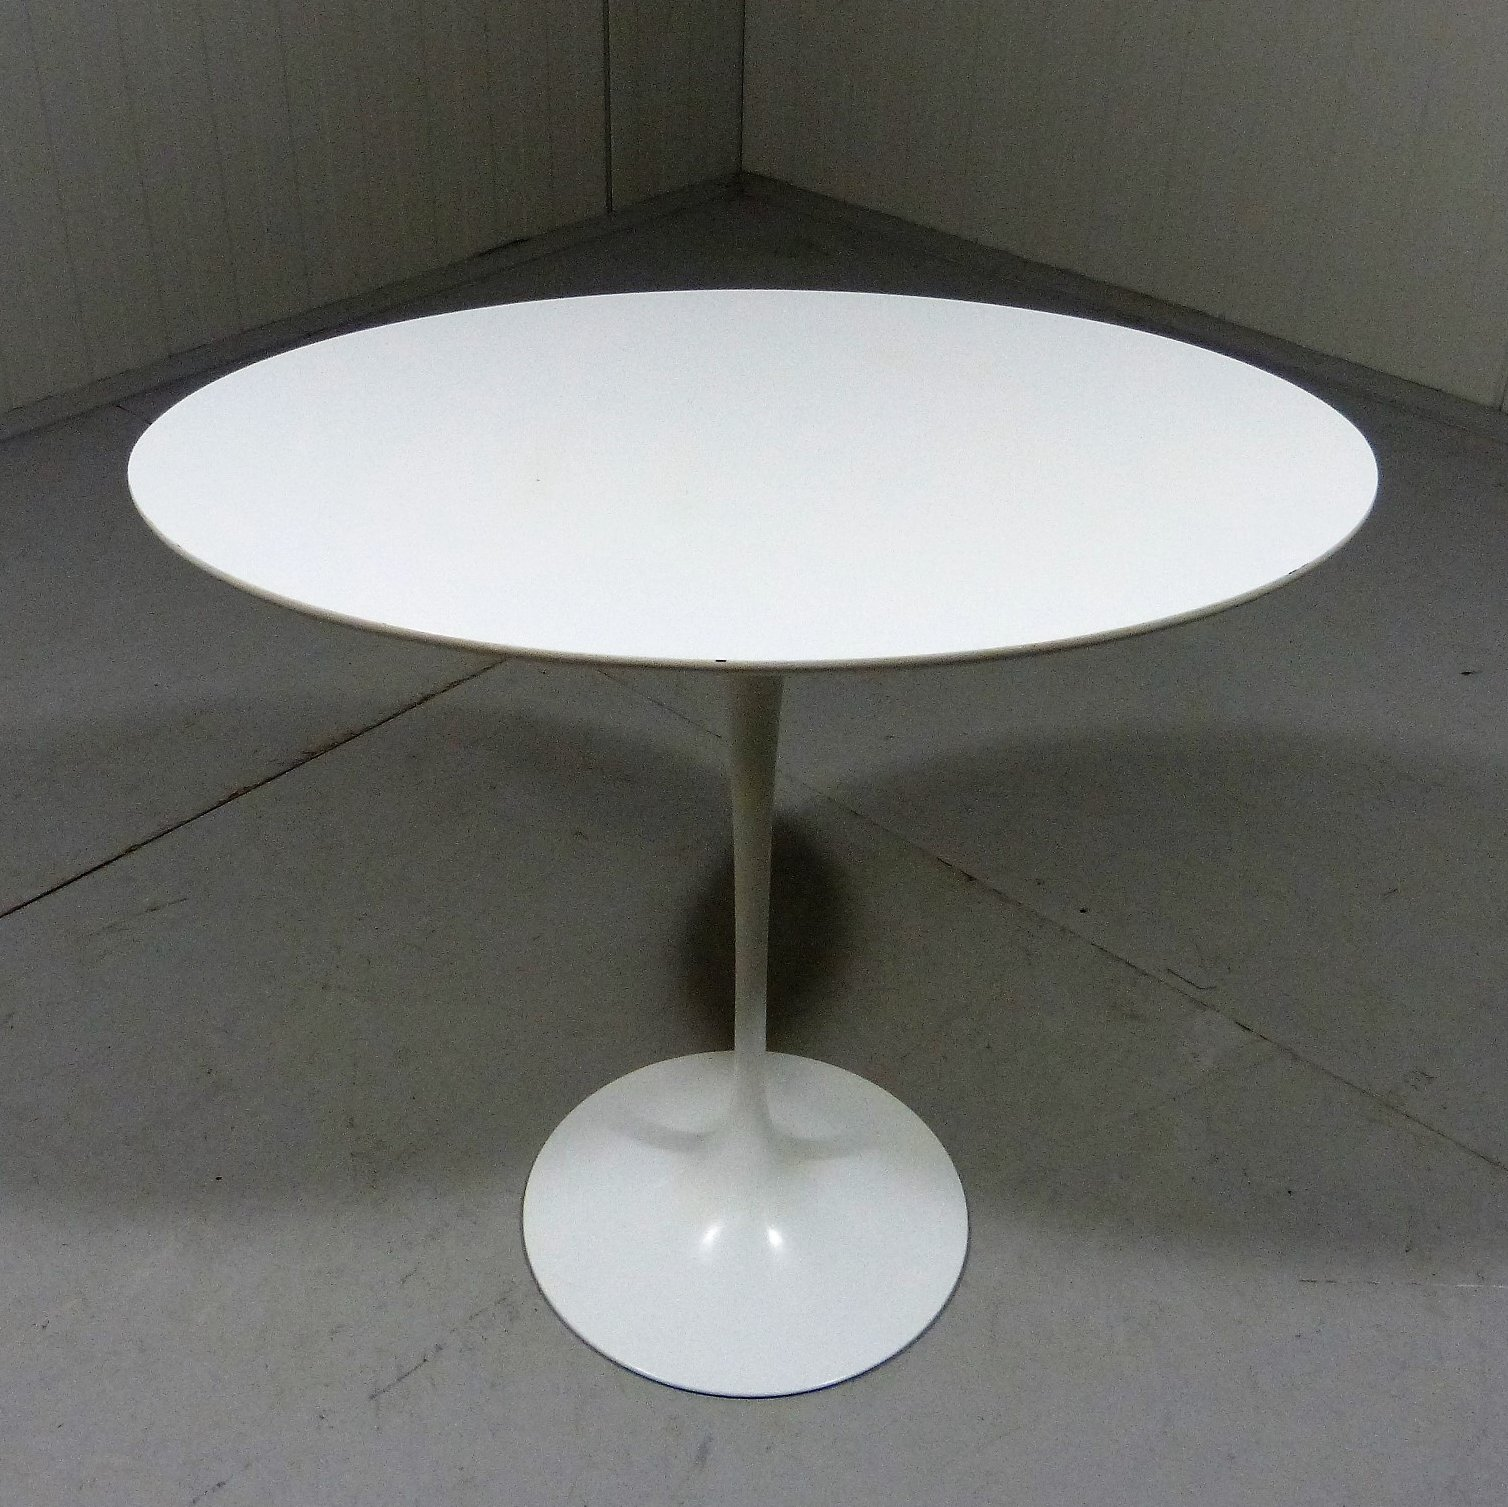 Oval Tulip Side Table By Eero Saarinen For Knoll International, 1960s